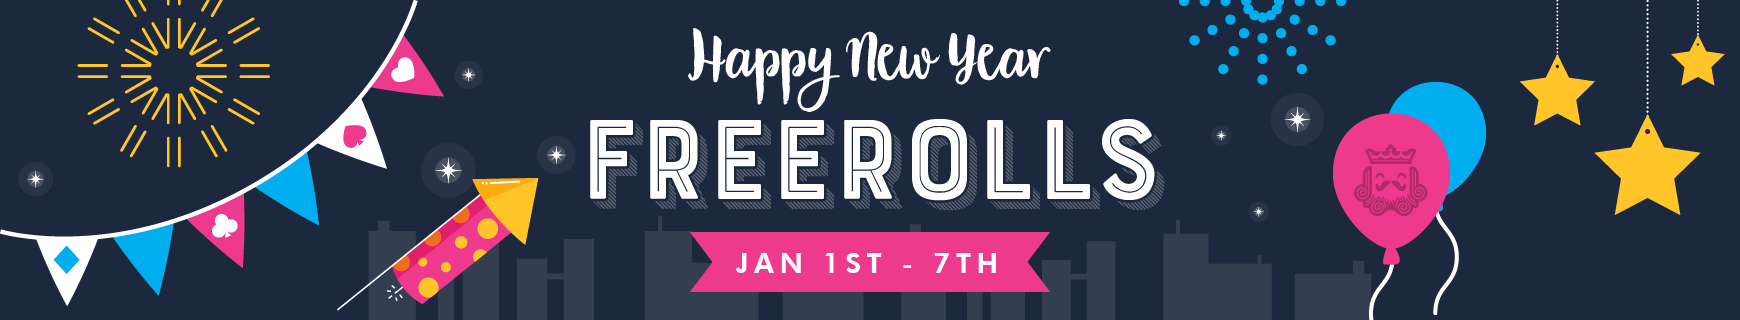 happy new year freerolls